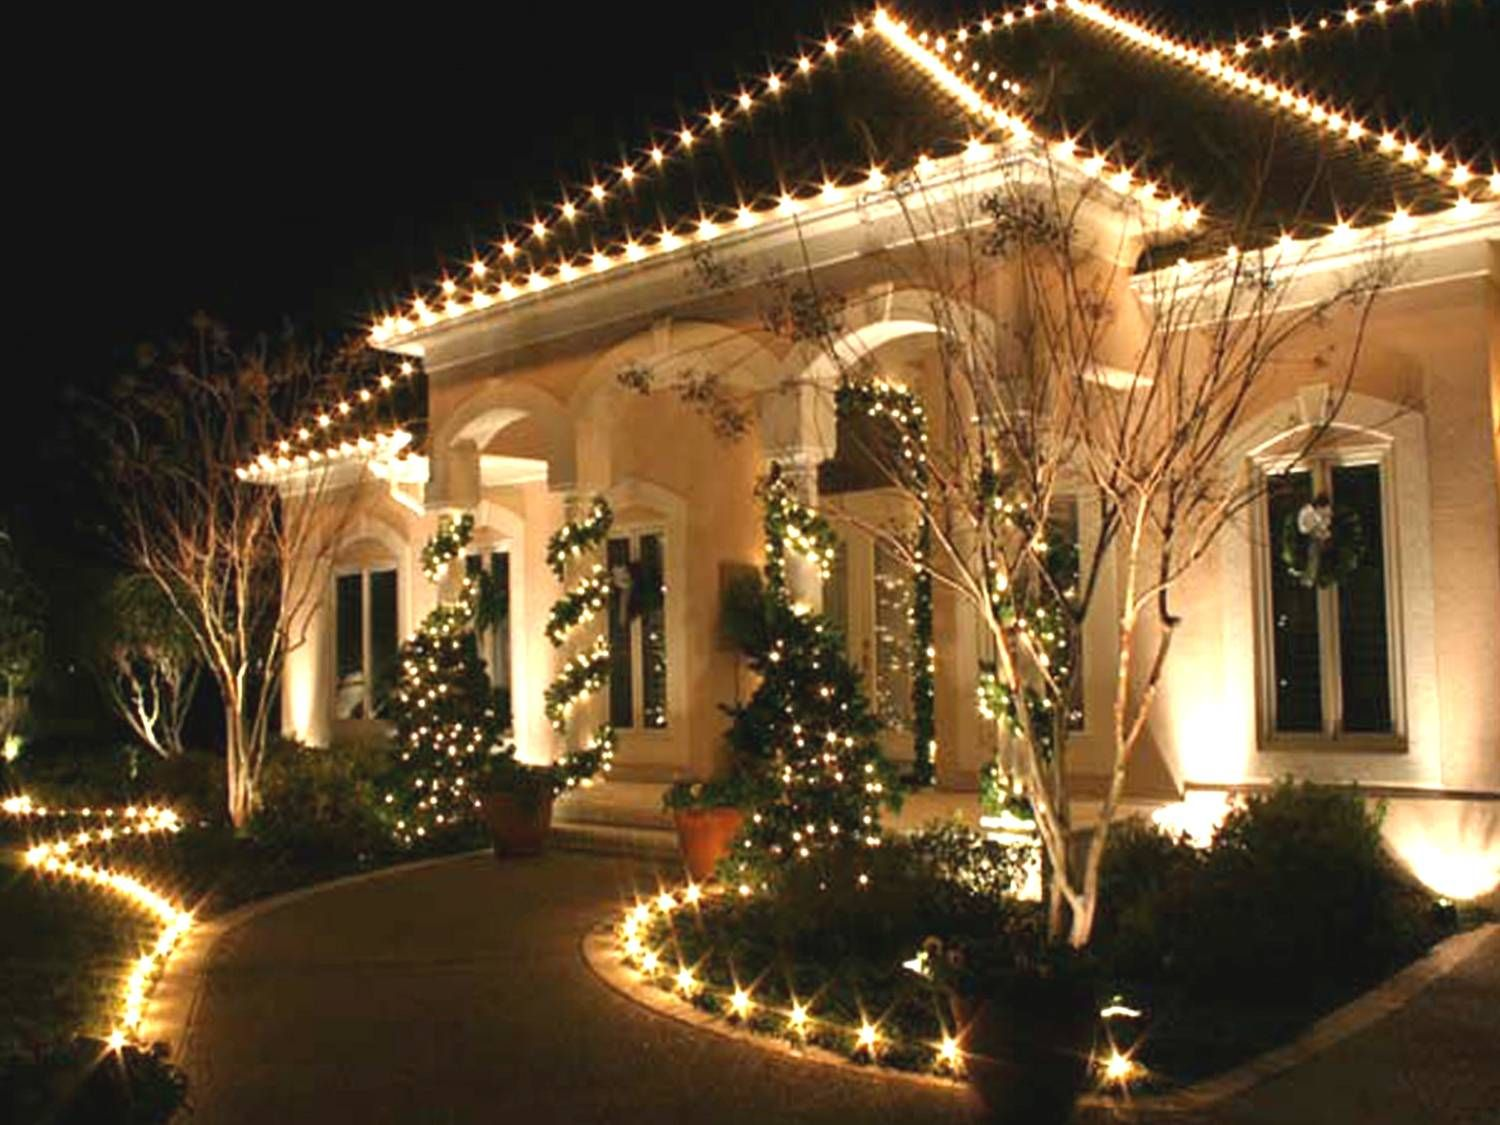 46 best Decorated houses for Christmas images on Pinterest ...